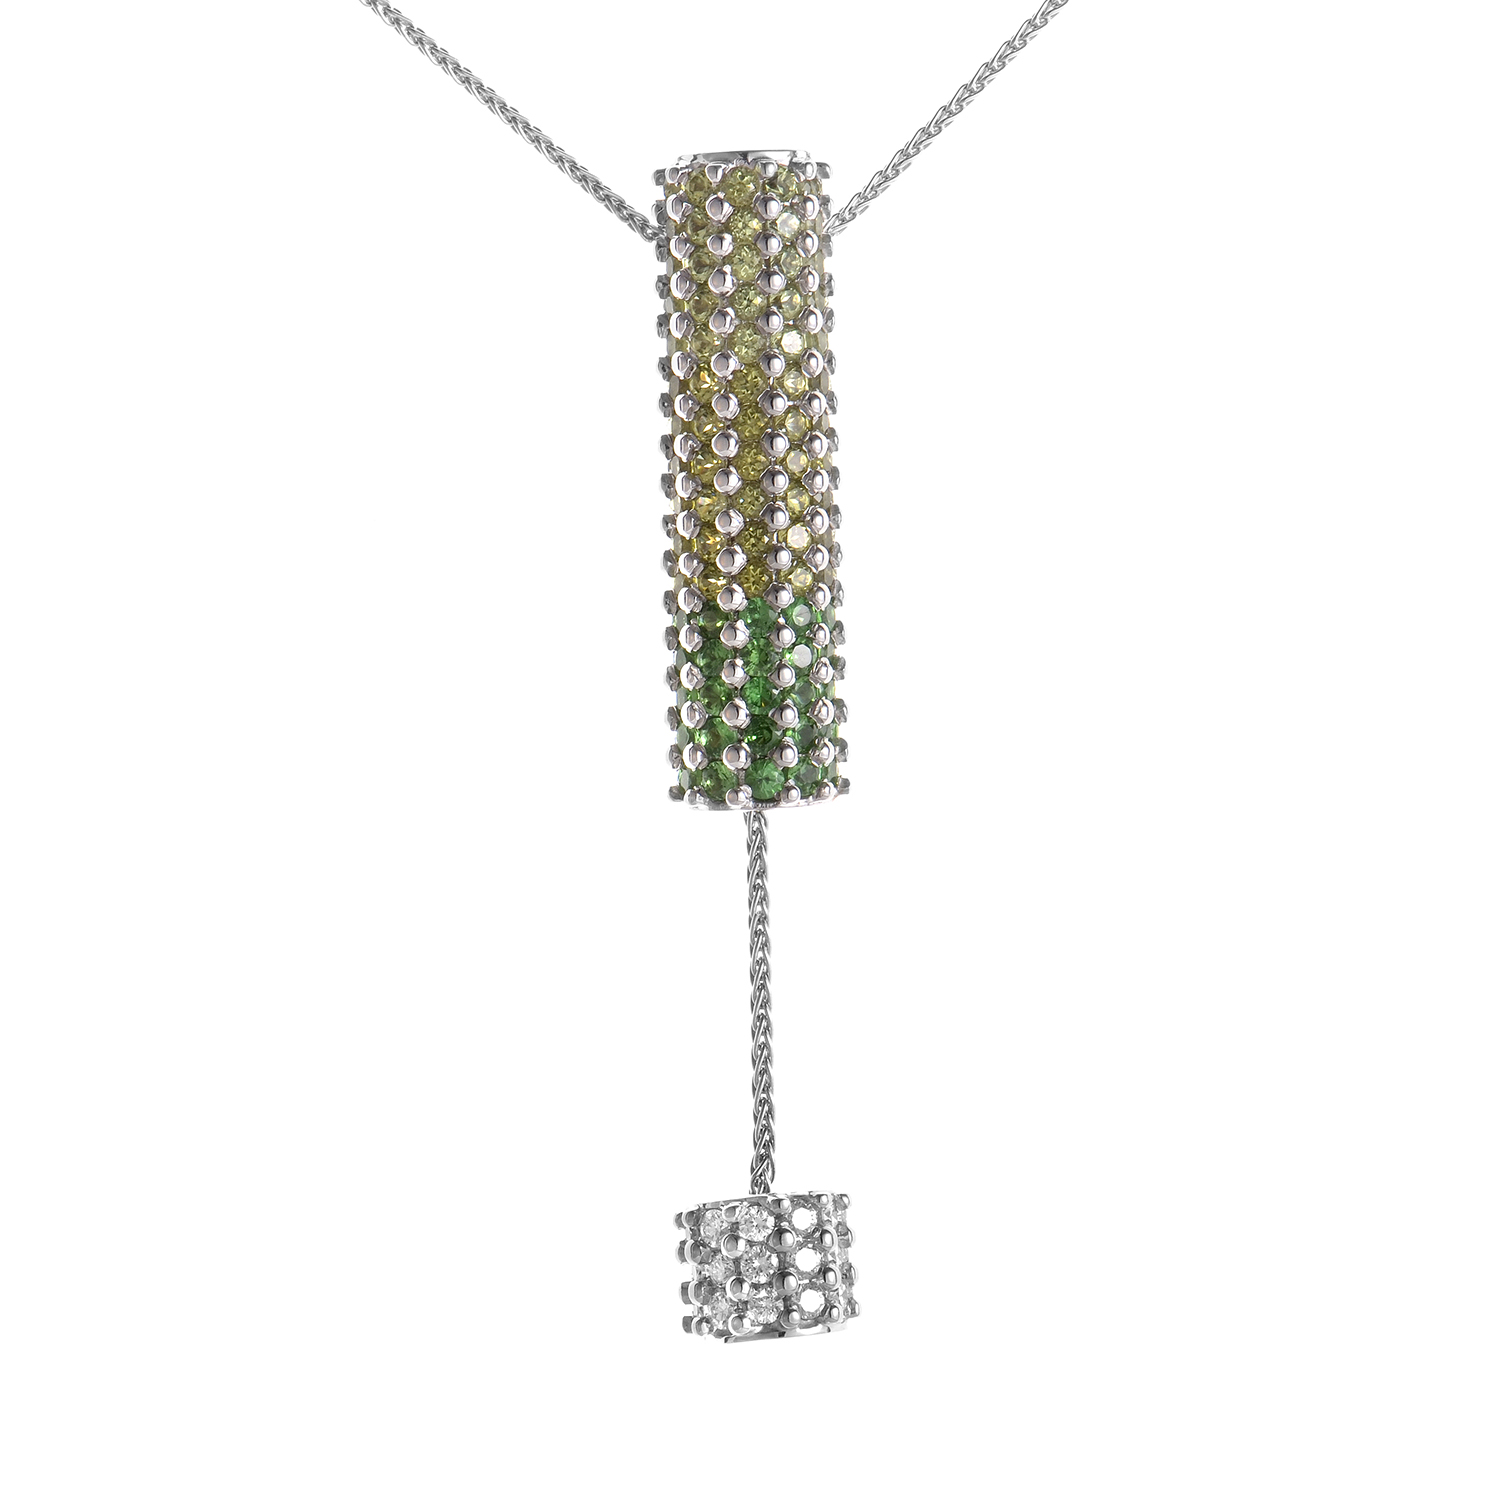 18K White Gold Green Gemstone Pendant Necklace